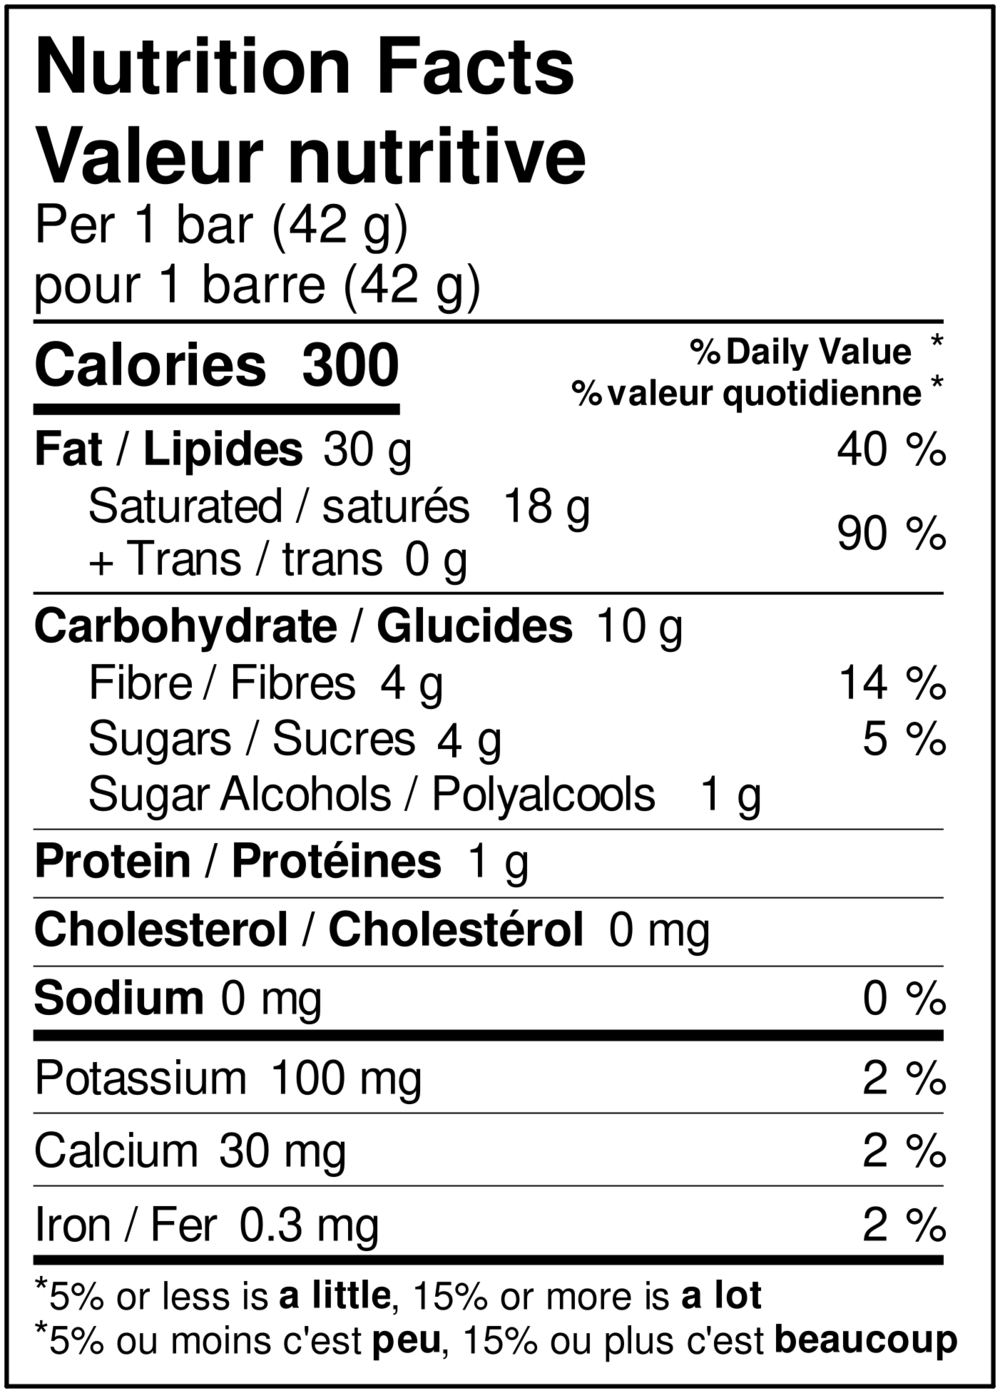 Nutritional Info for Chili Bar